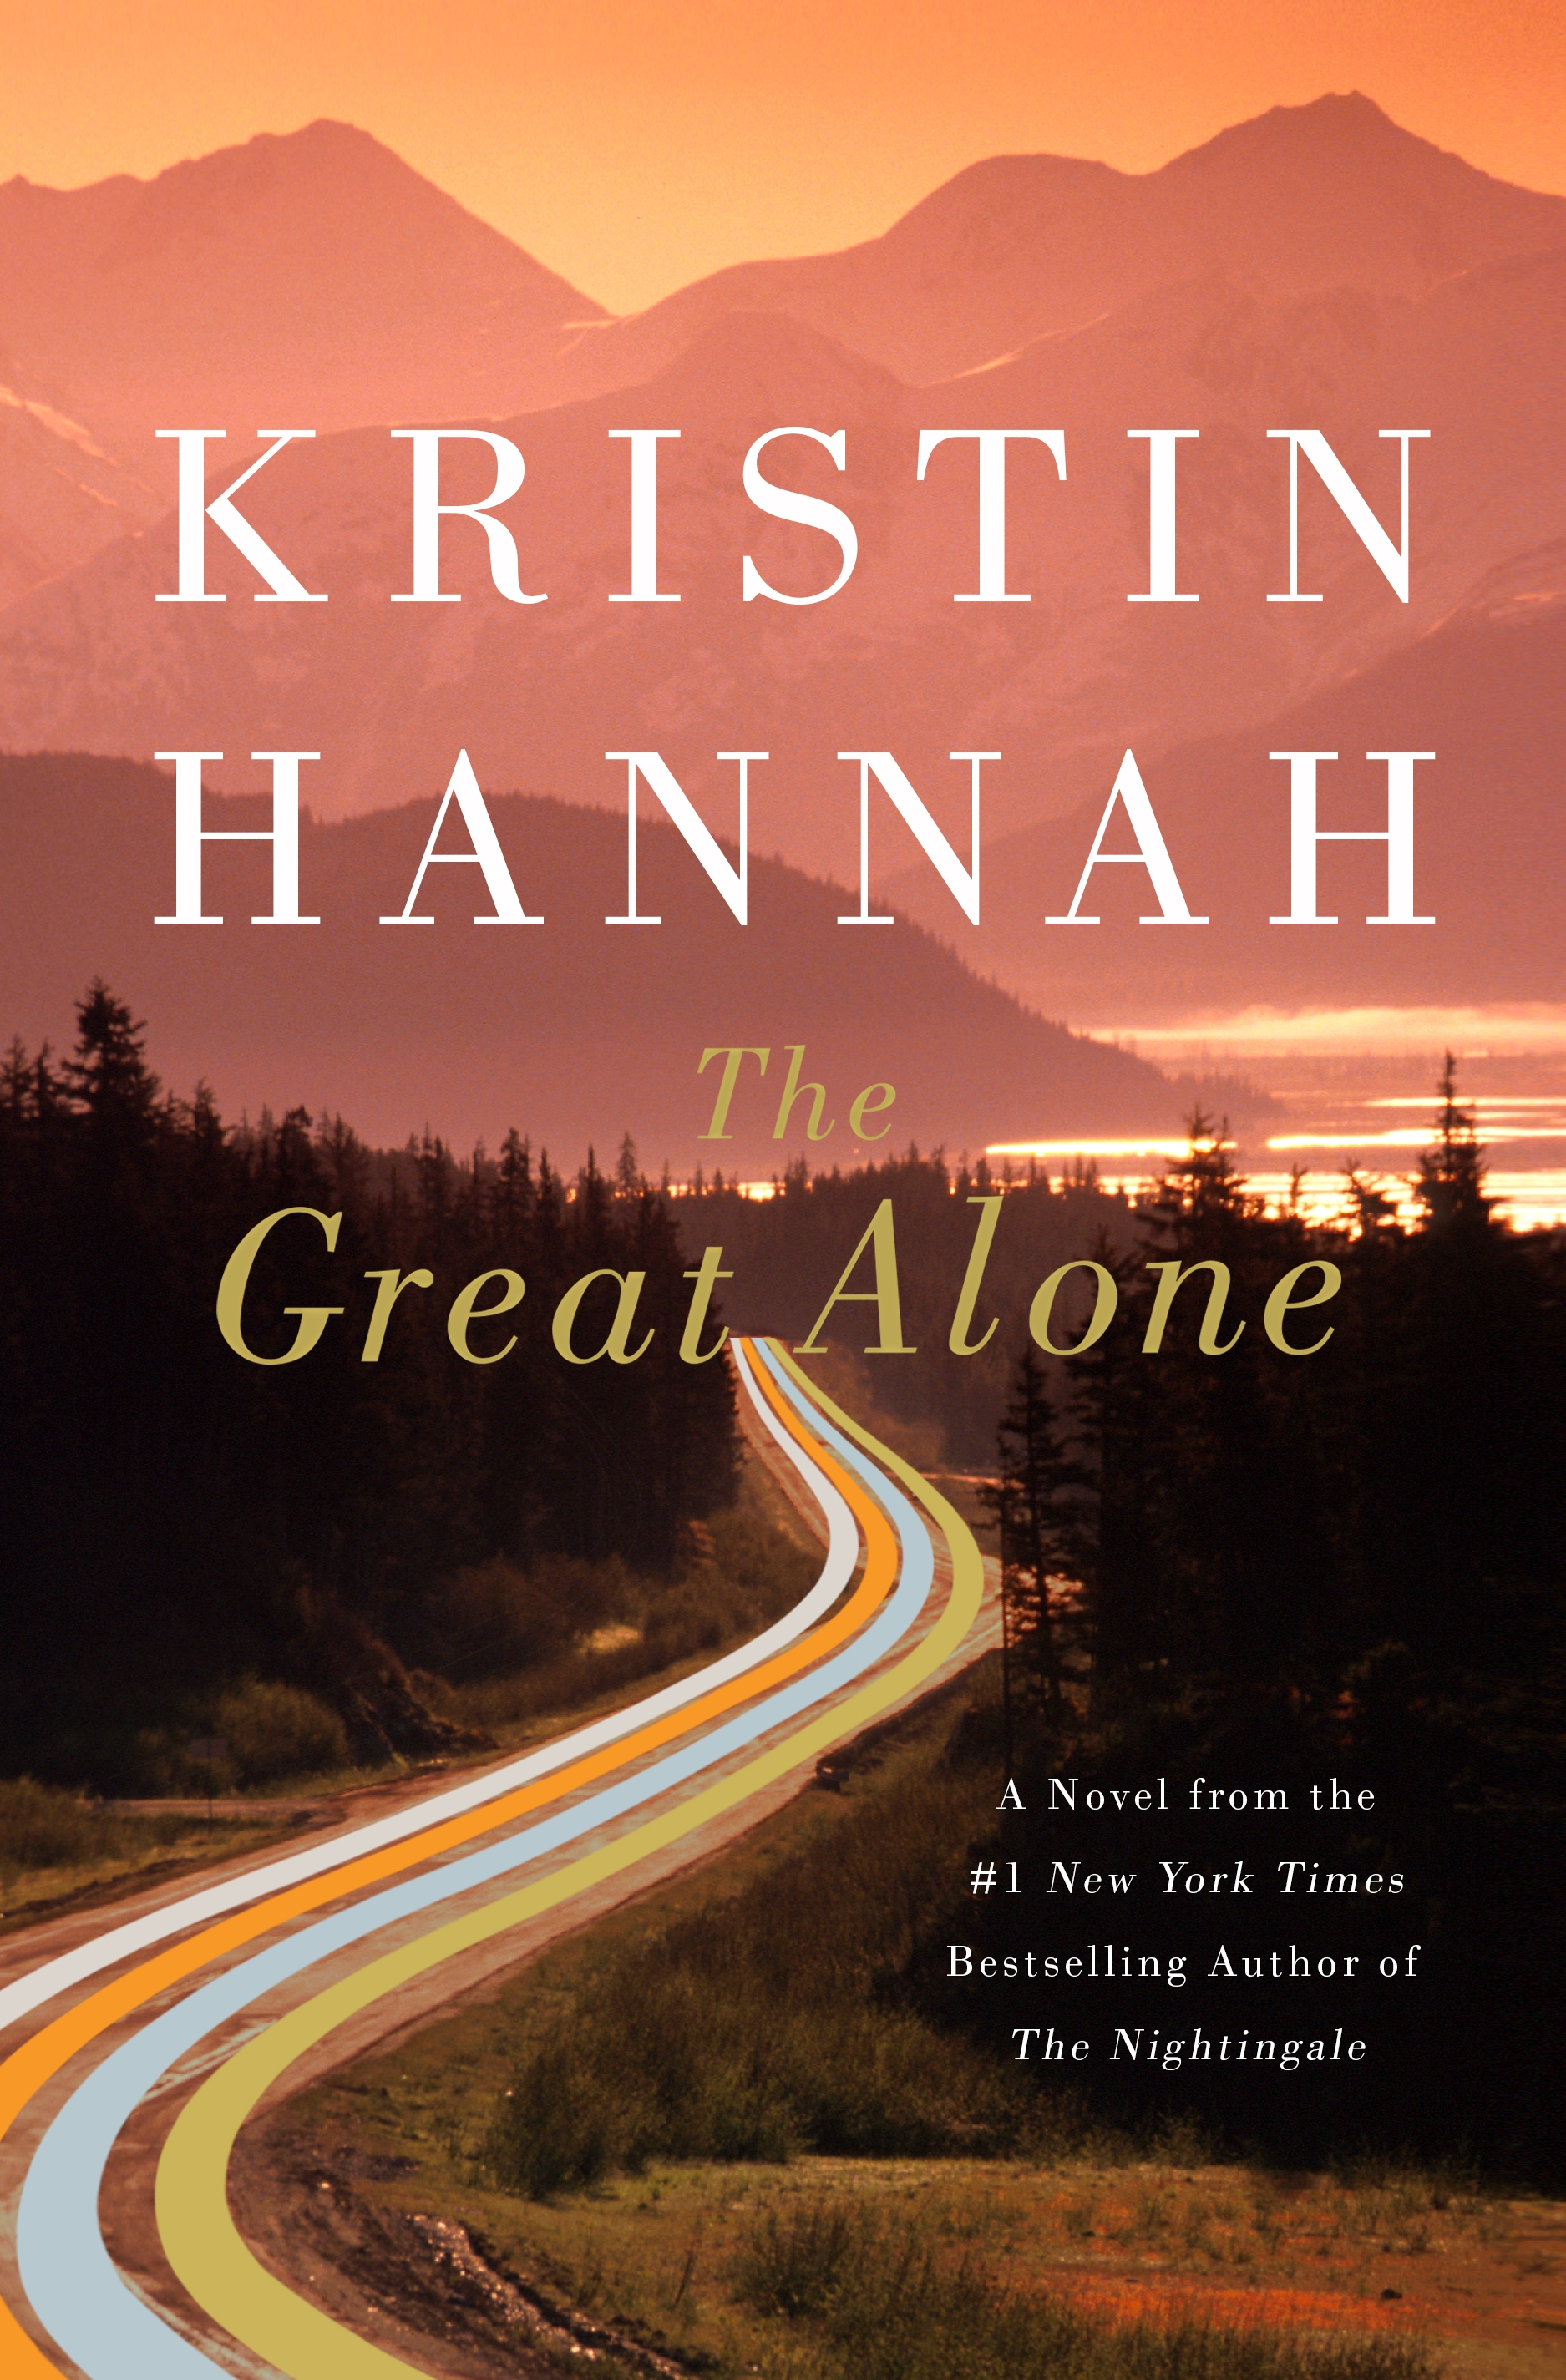 """The Great Alone"" by{ }Kristin Hannah (Image: Courtesy{ }Holtzbrinck){ }"